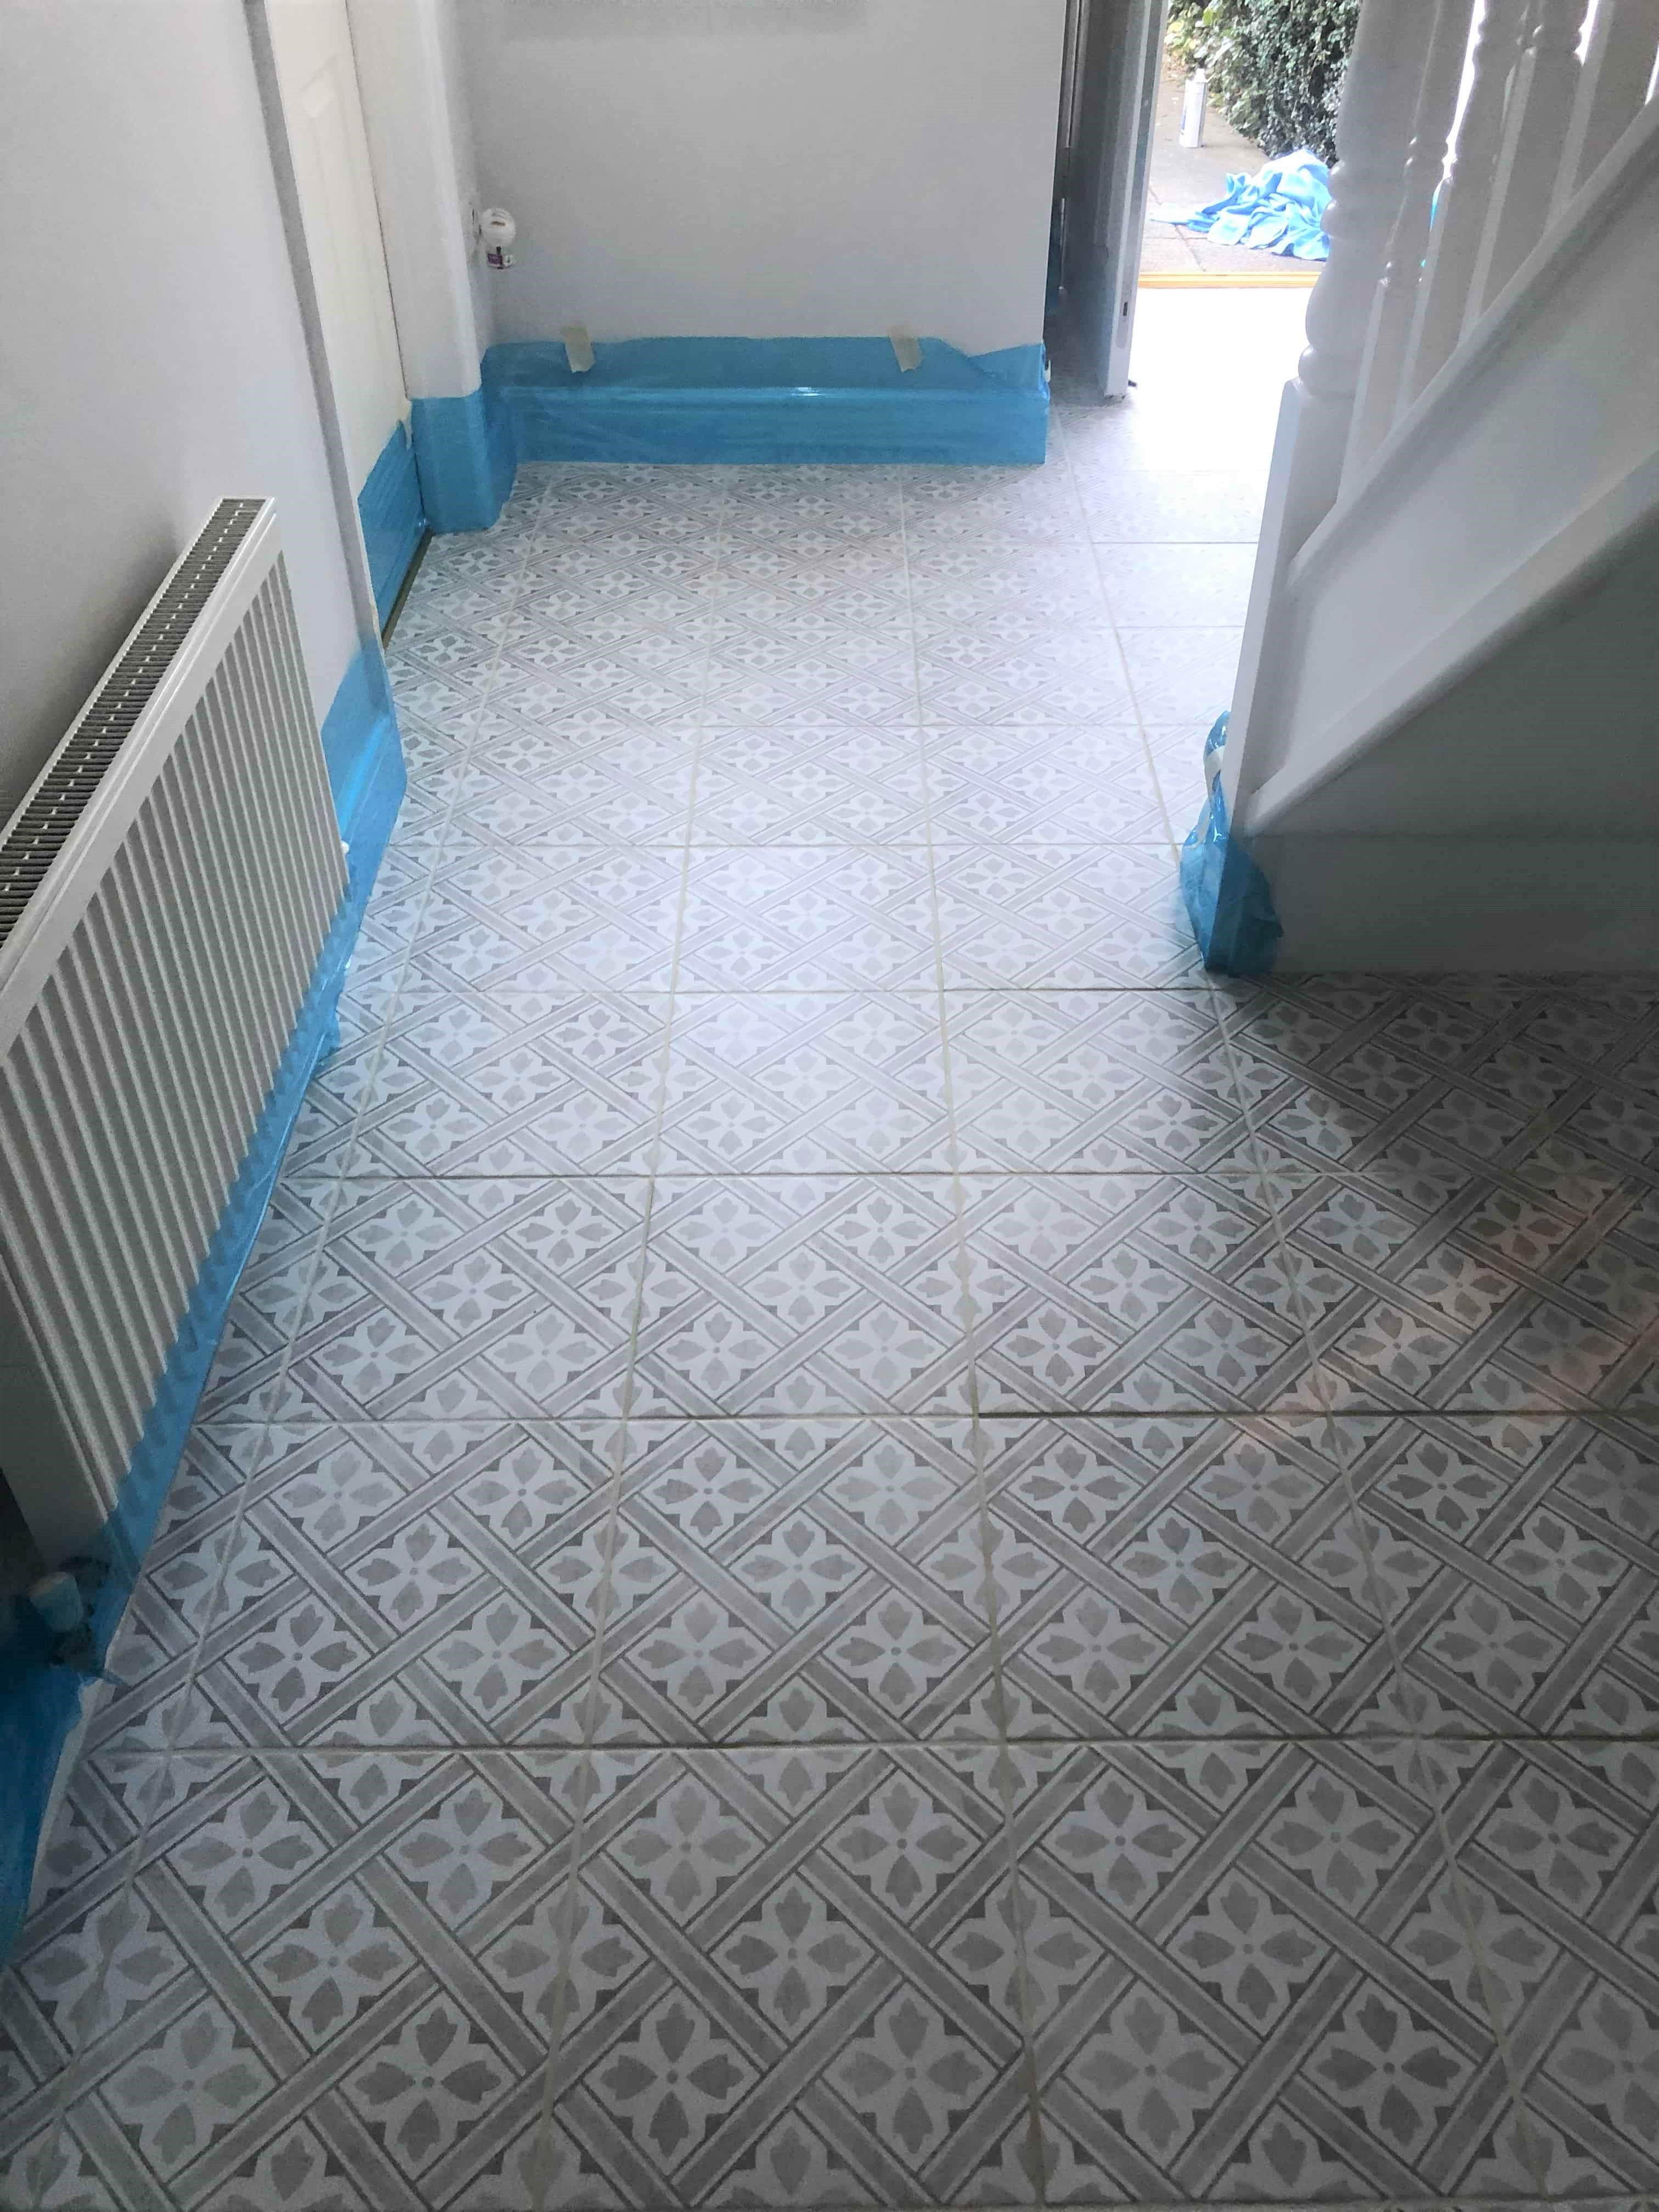 Encaustic Tiled Hallway After Cleaning Waterbeach